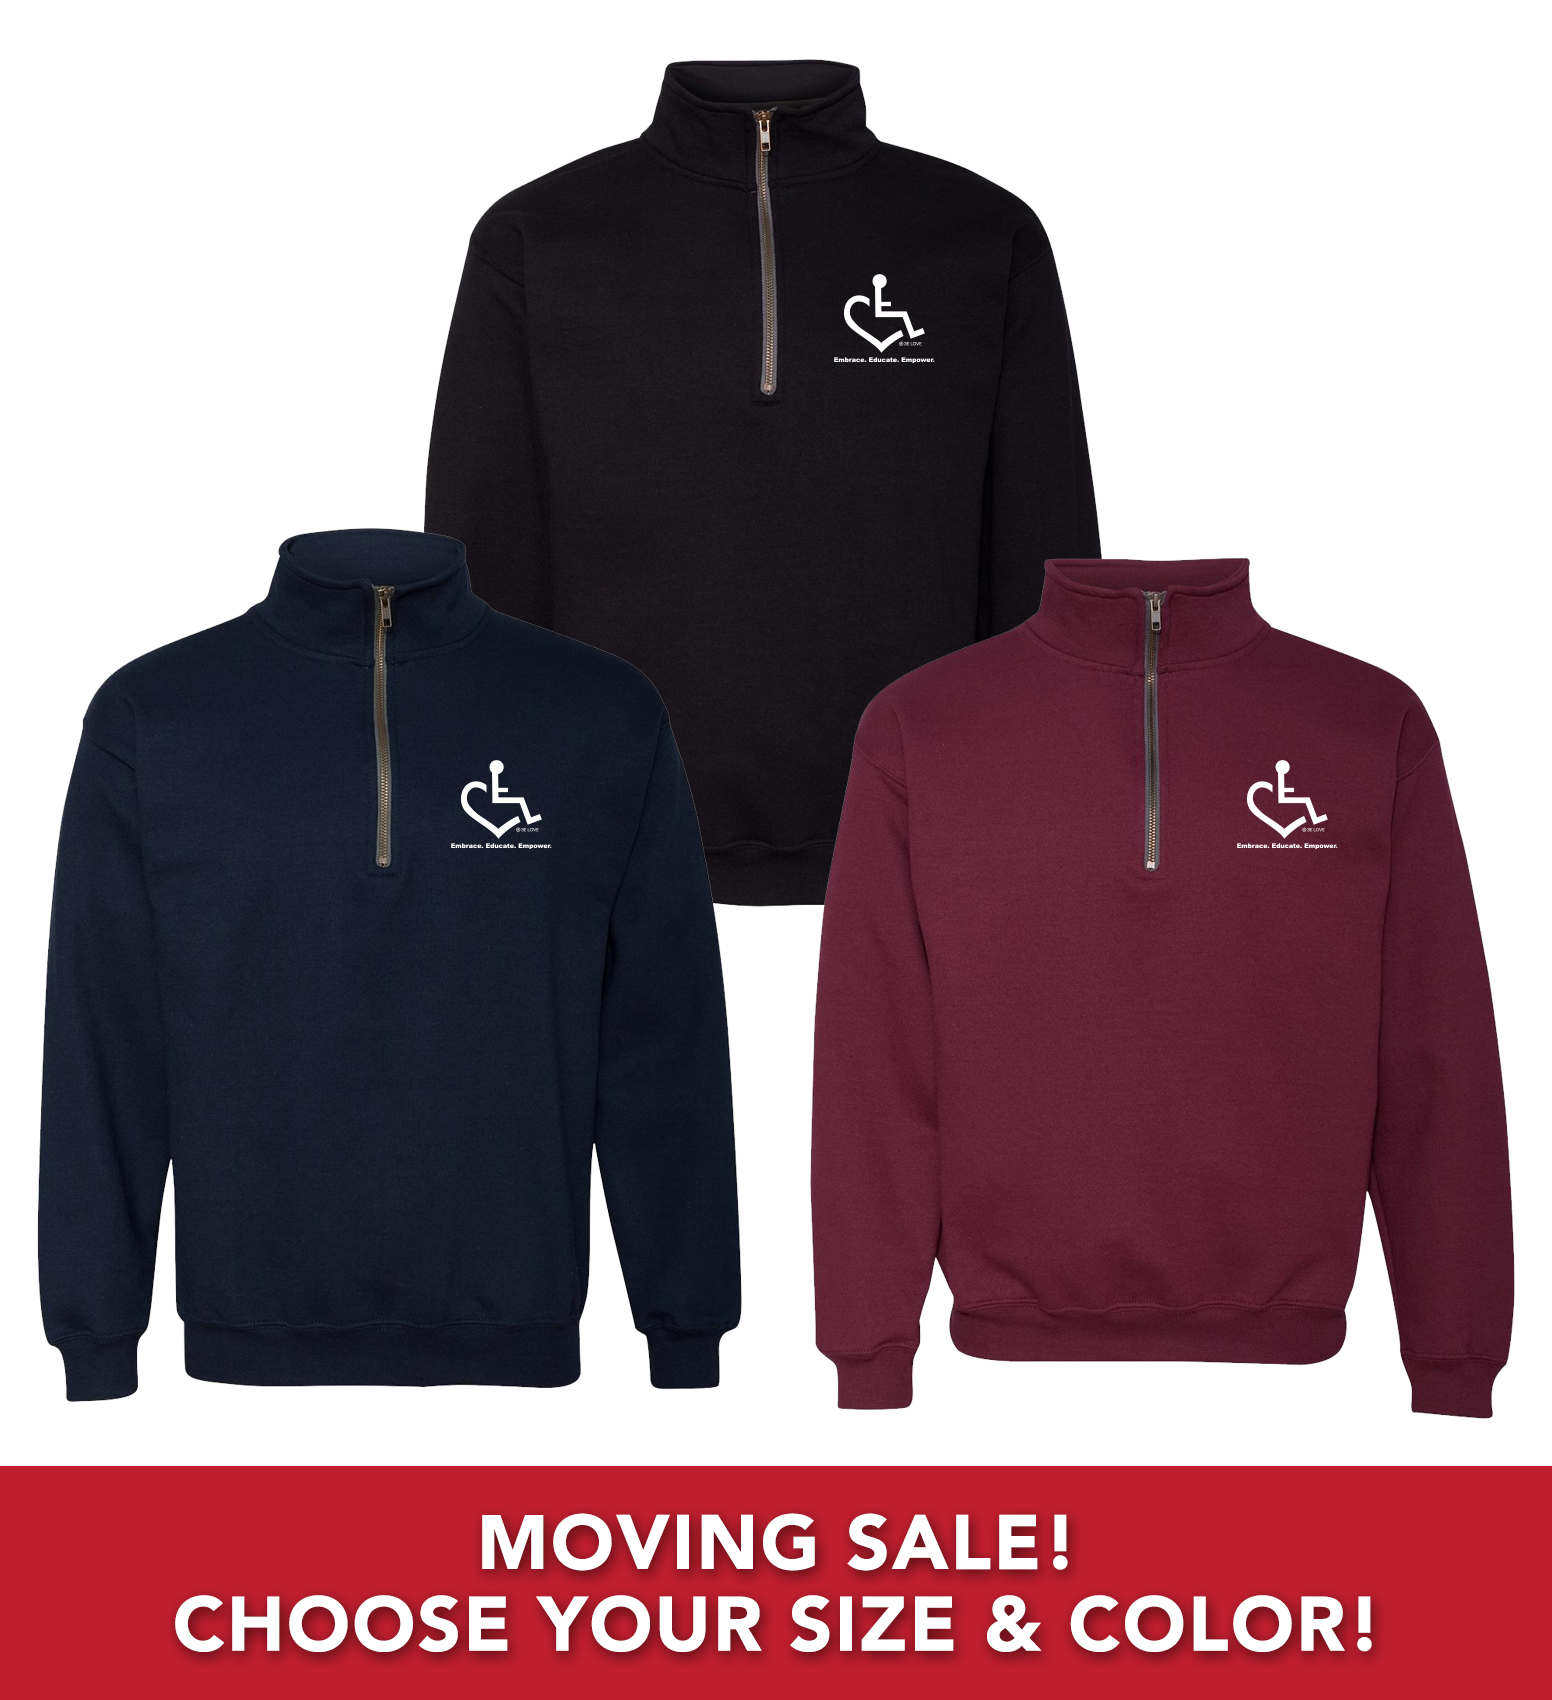 Moving Sale - Original Heart Quarter Zip Sweatshirts